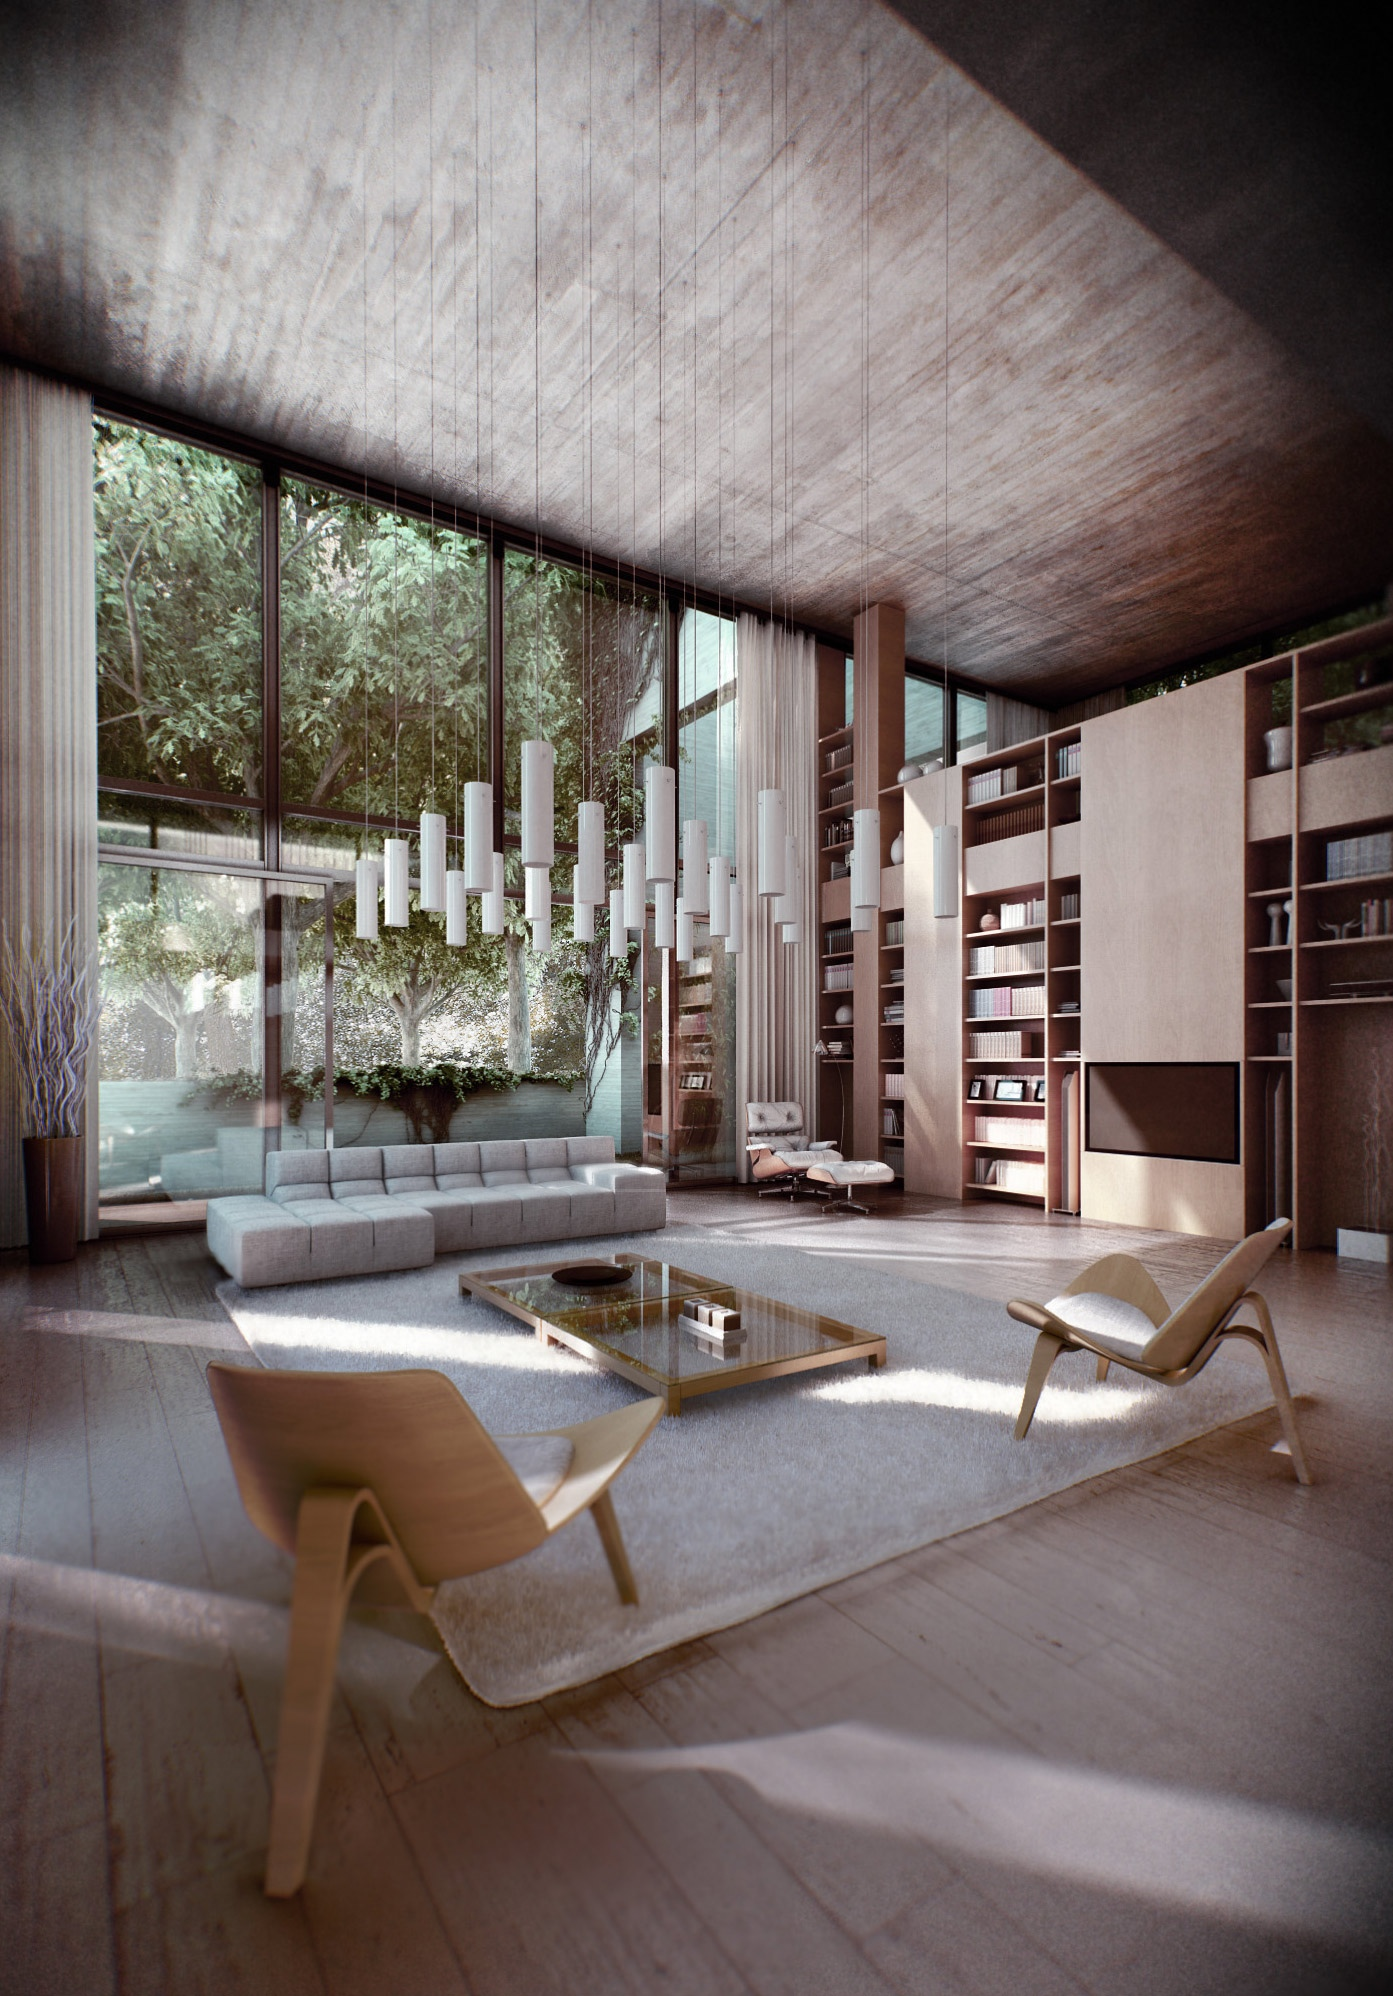 Zen Inspired Interior Design - ^